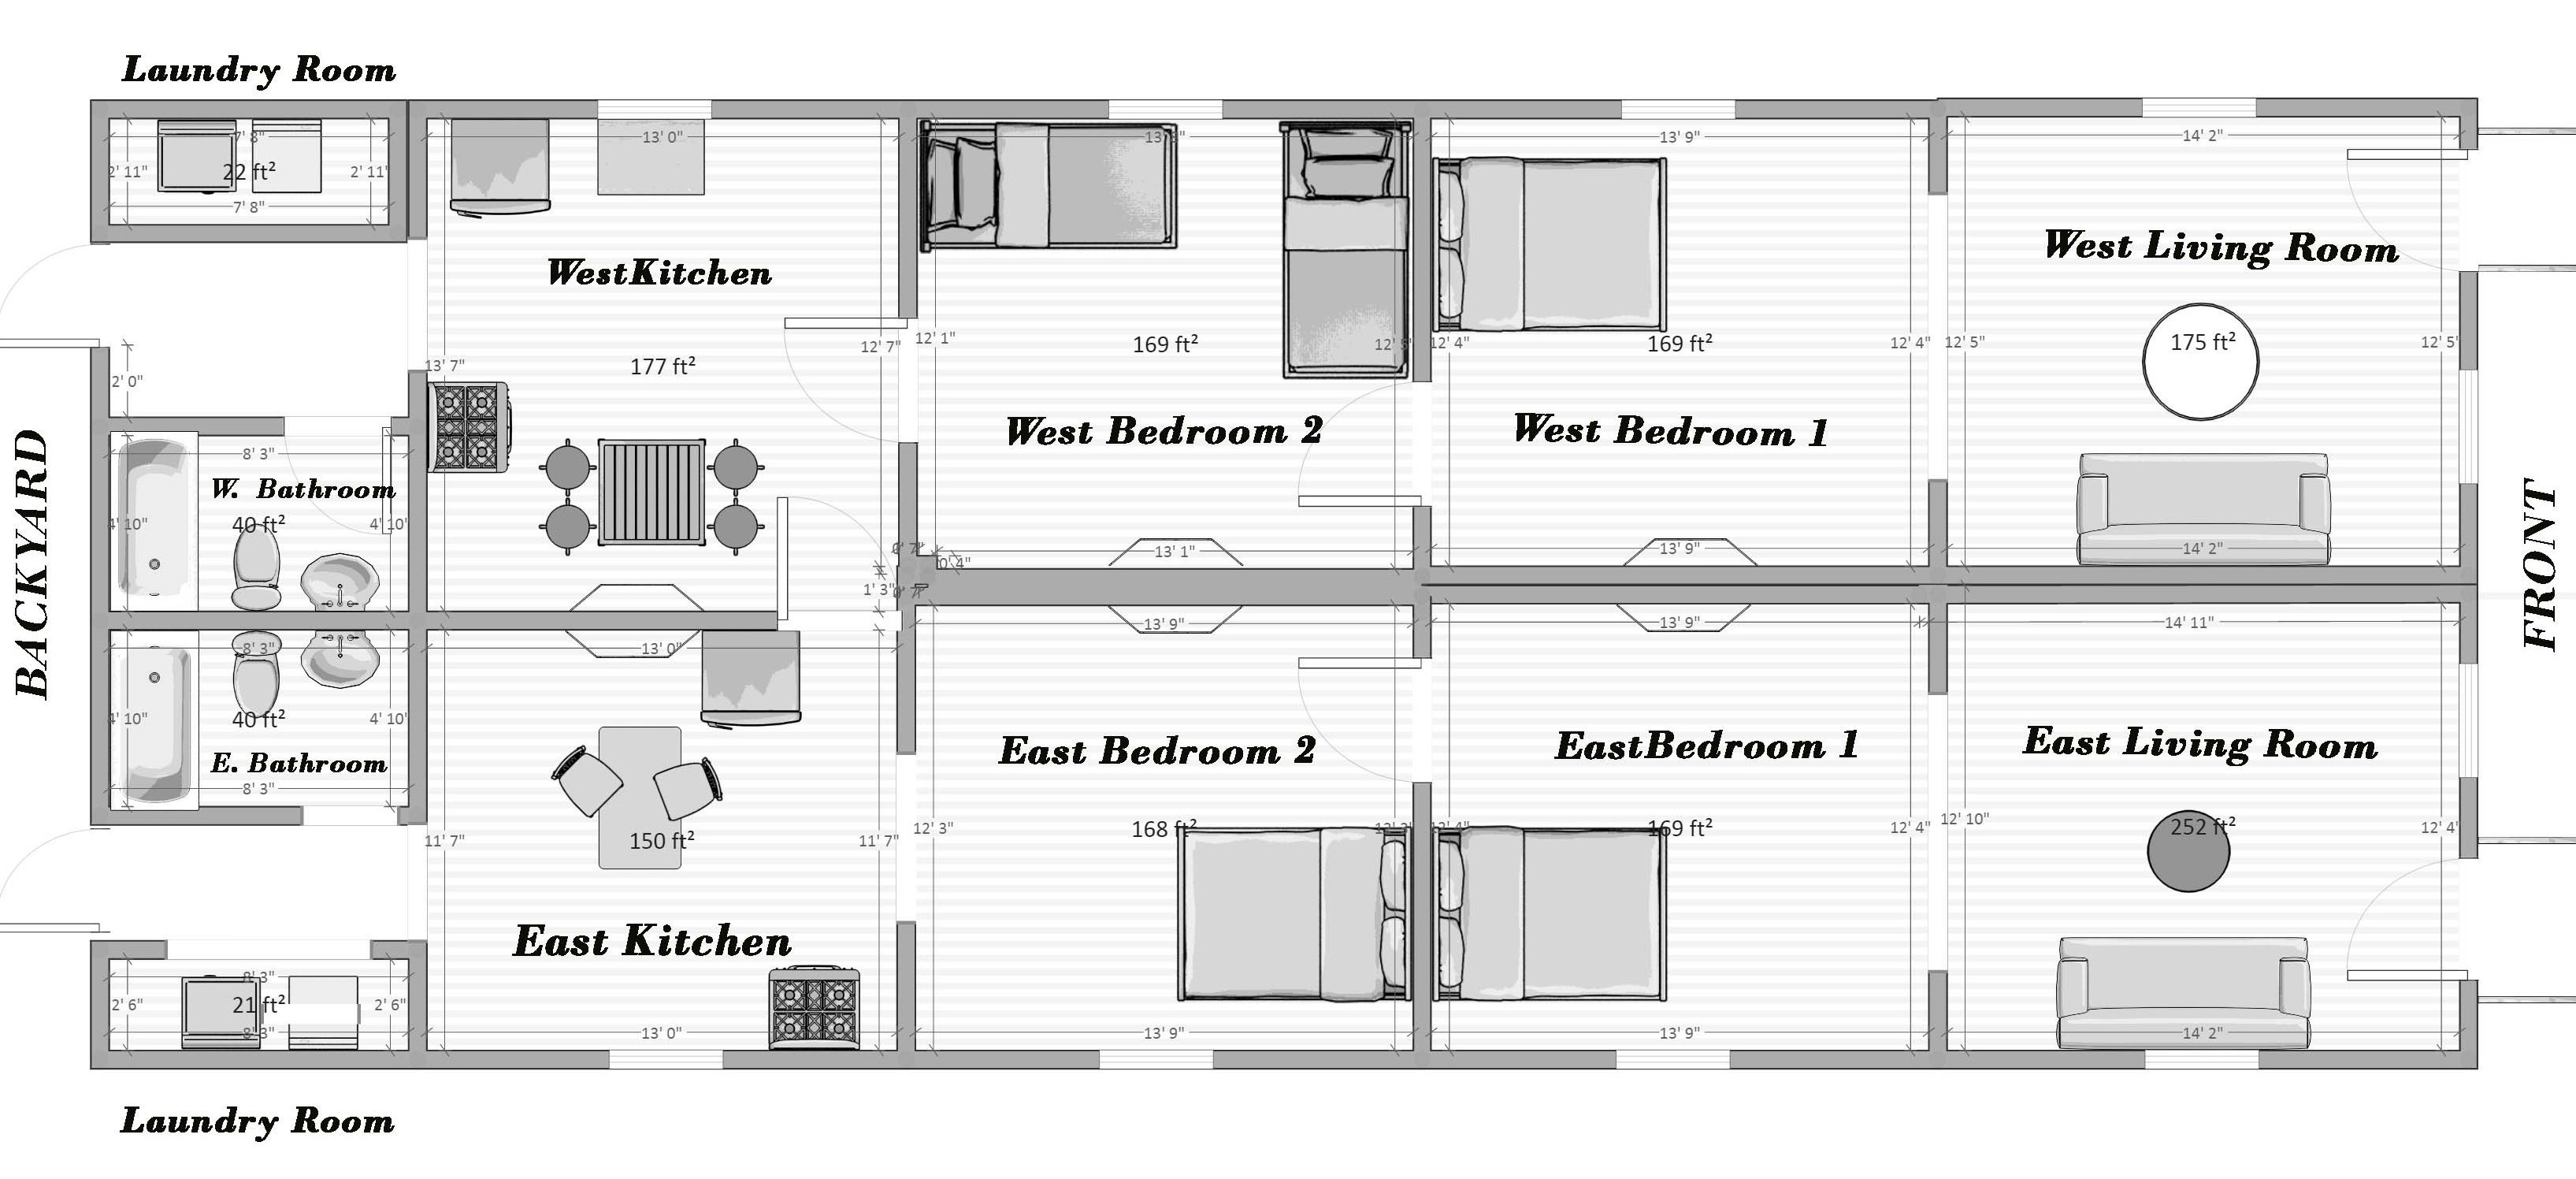 How to Lay Out a Narrow, Railroad-Style Apartment ... Shotgun House Plans Bedroom on